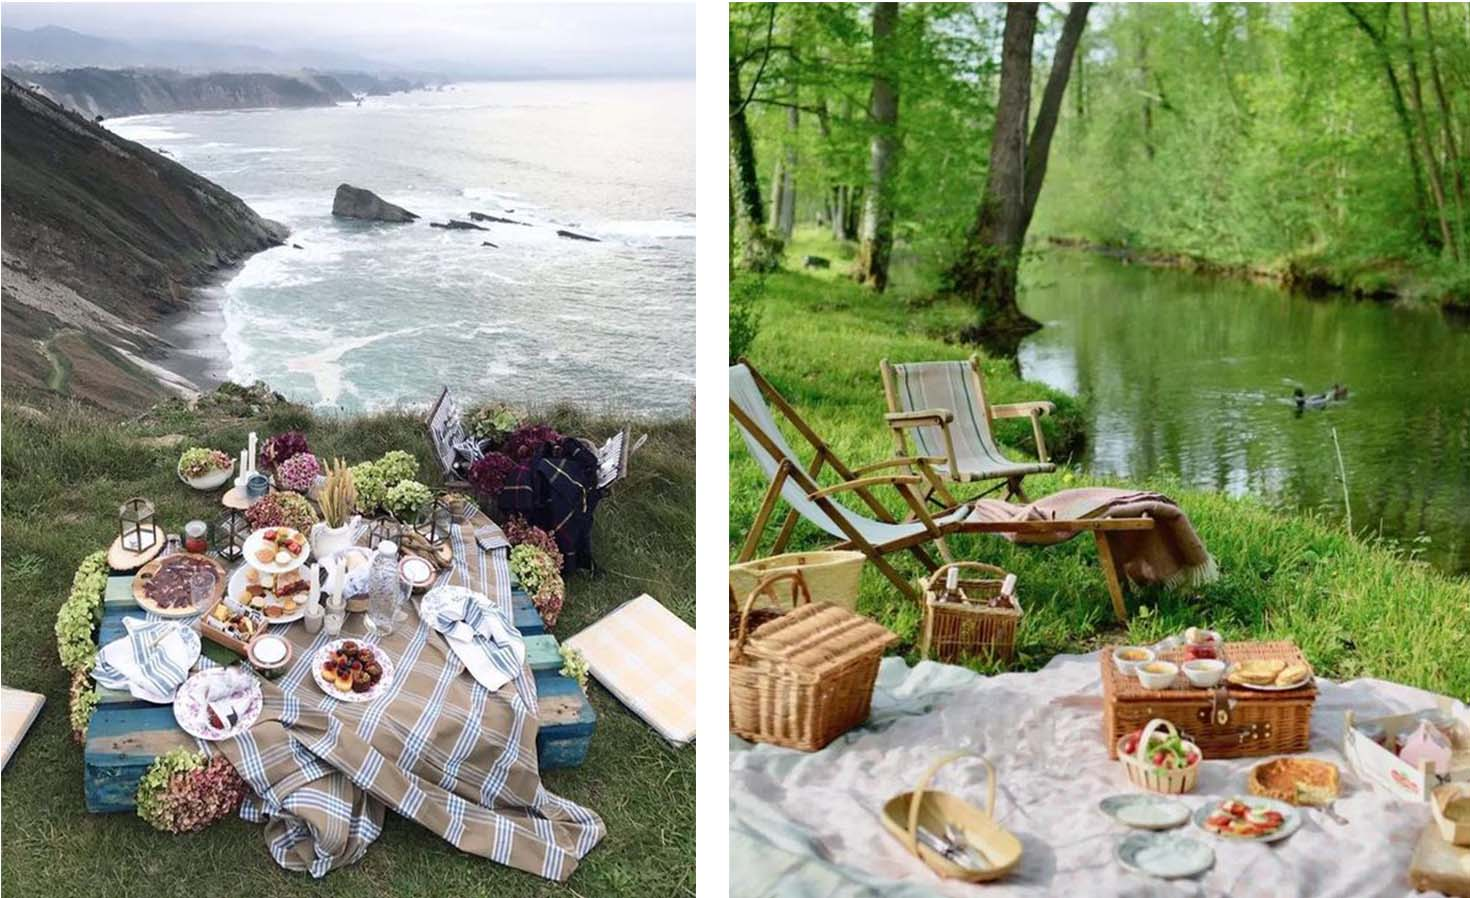 Picnic in Normandy